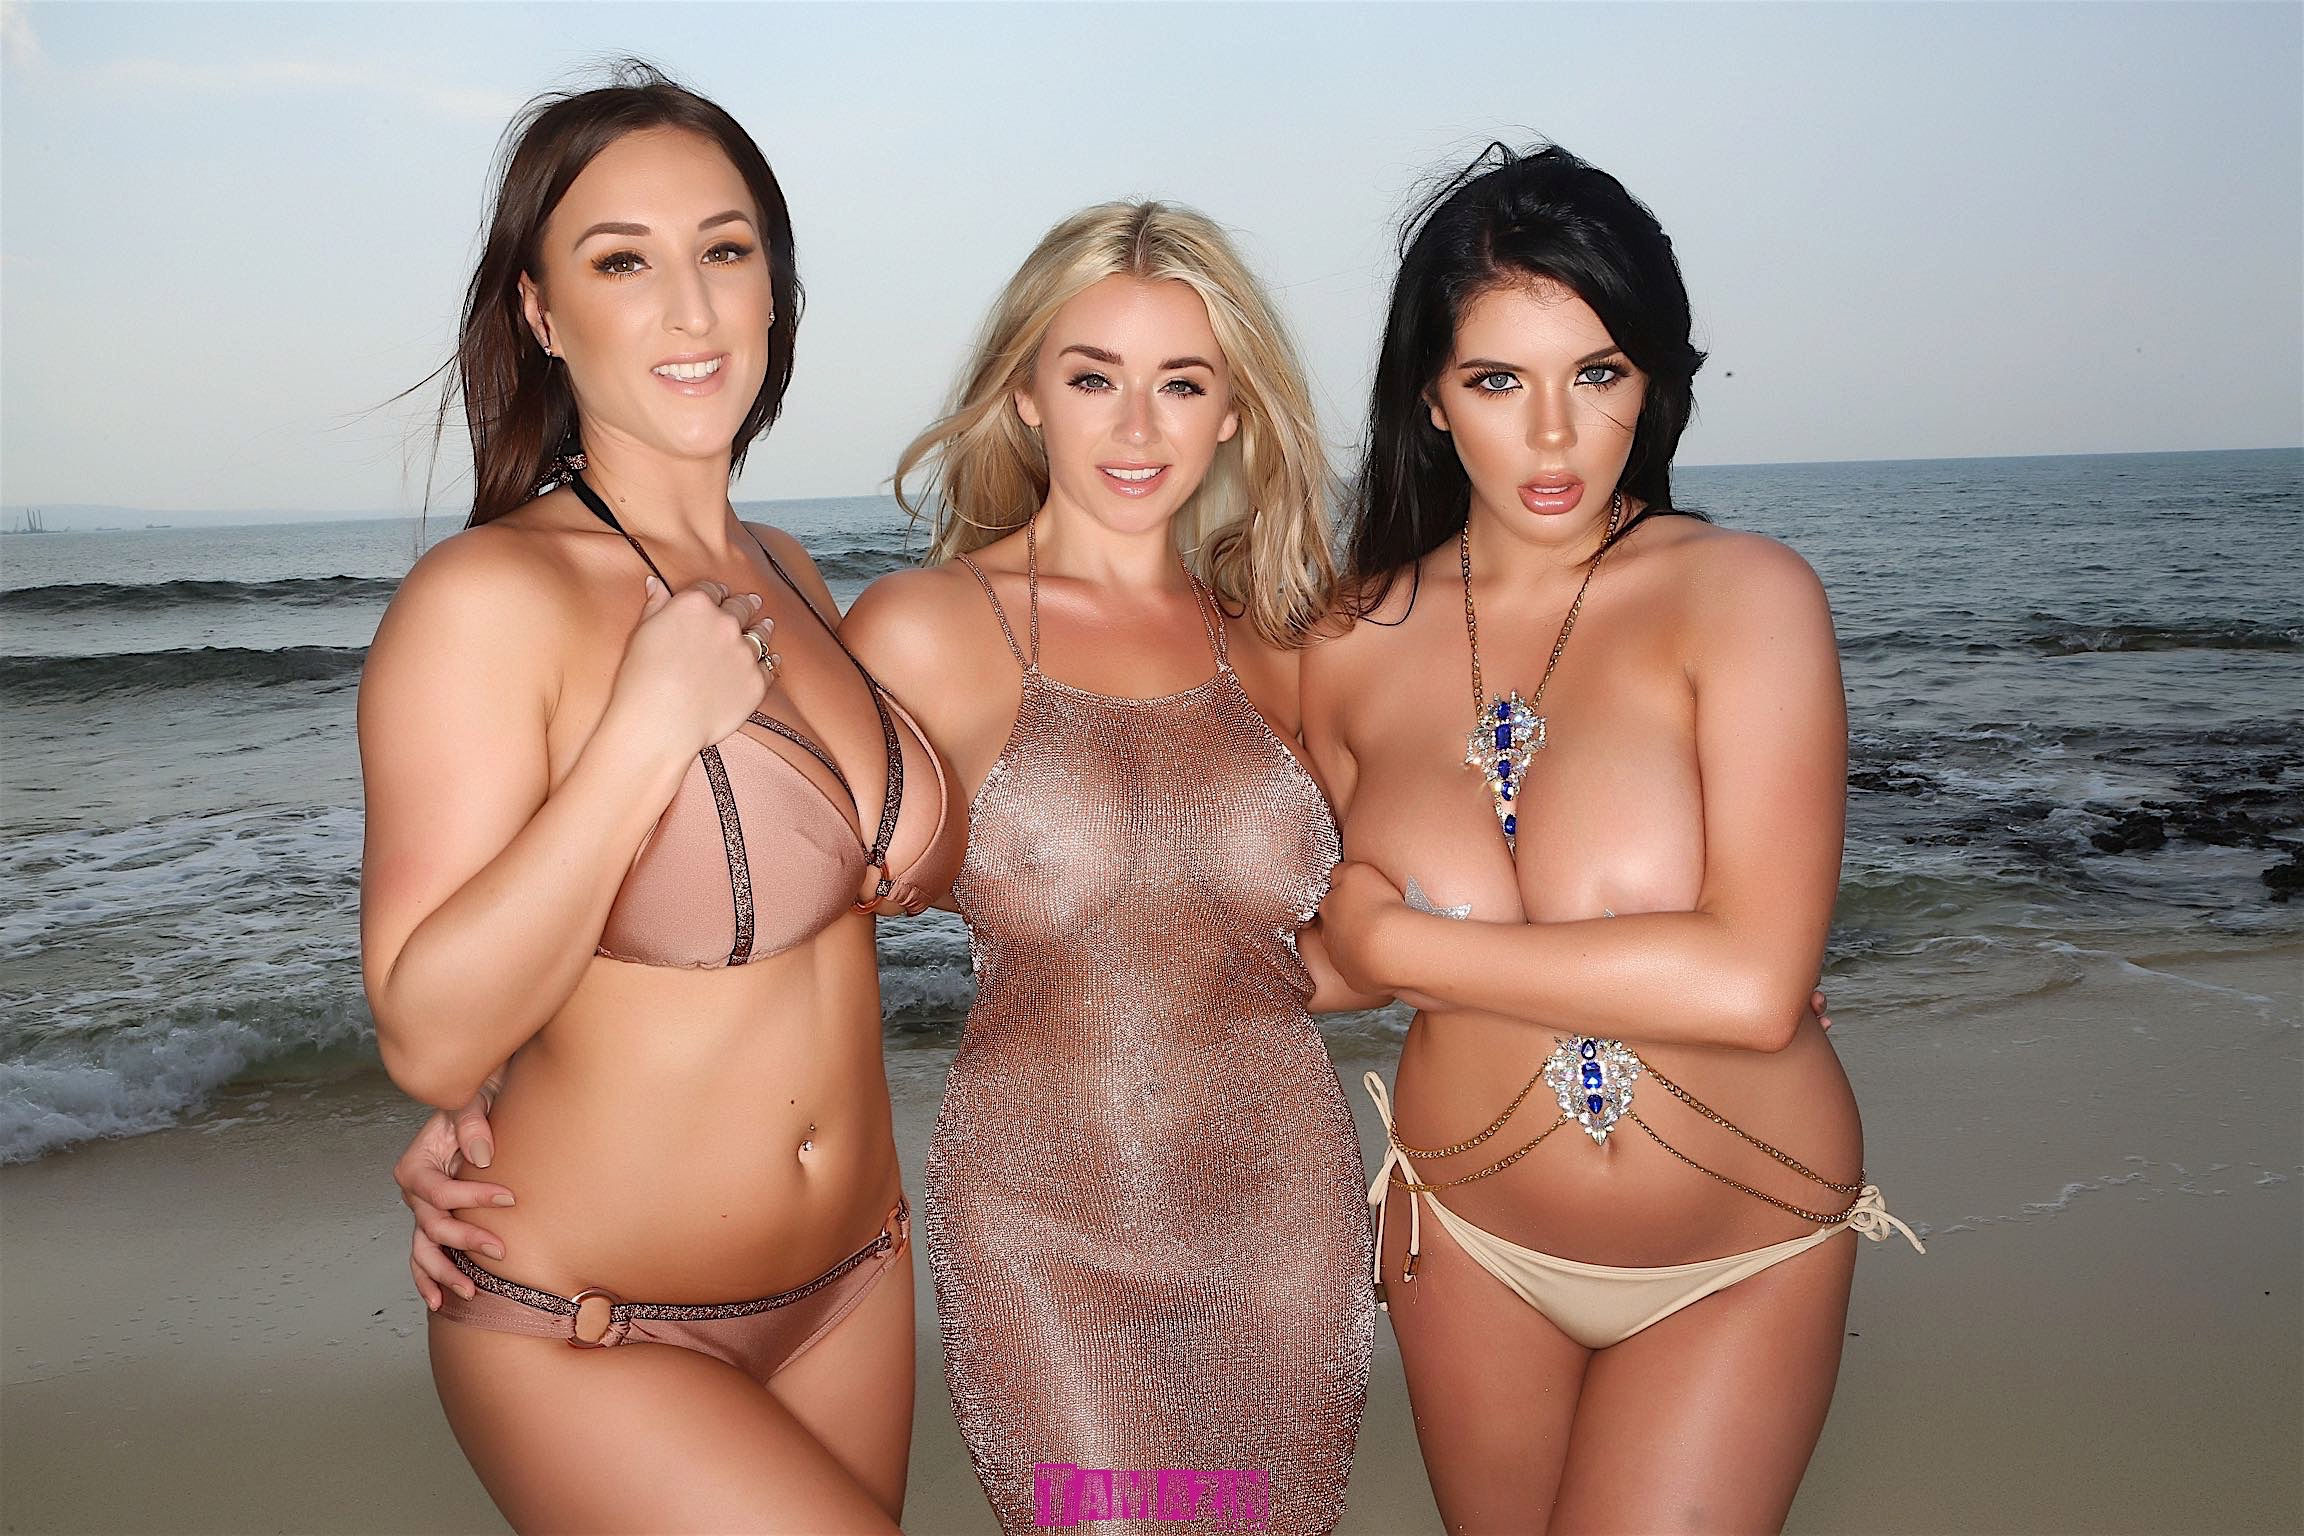 Naked on the beach with Stacey Poole and Melissa Debling! – 201 Uncensored Images